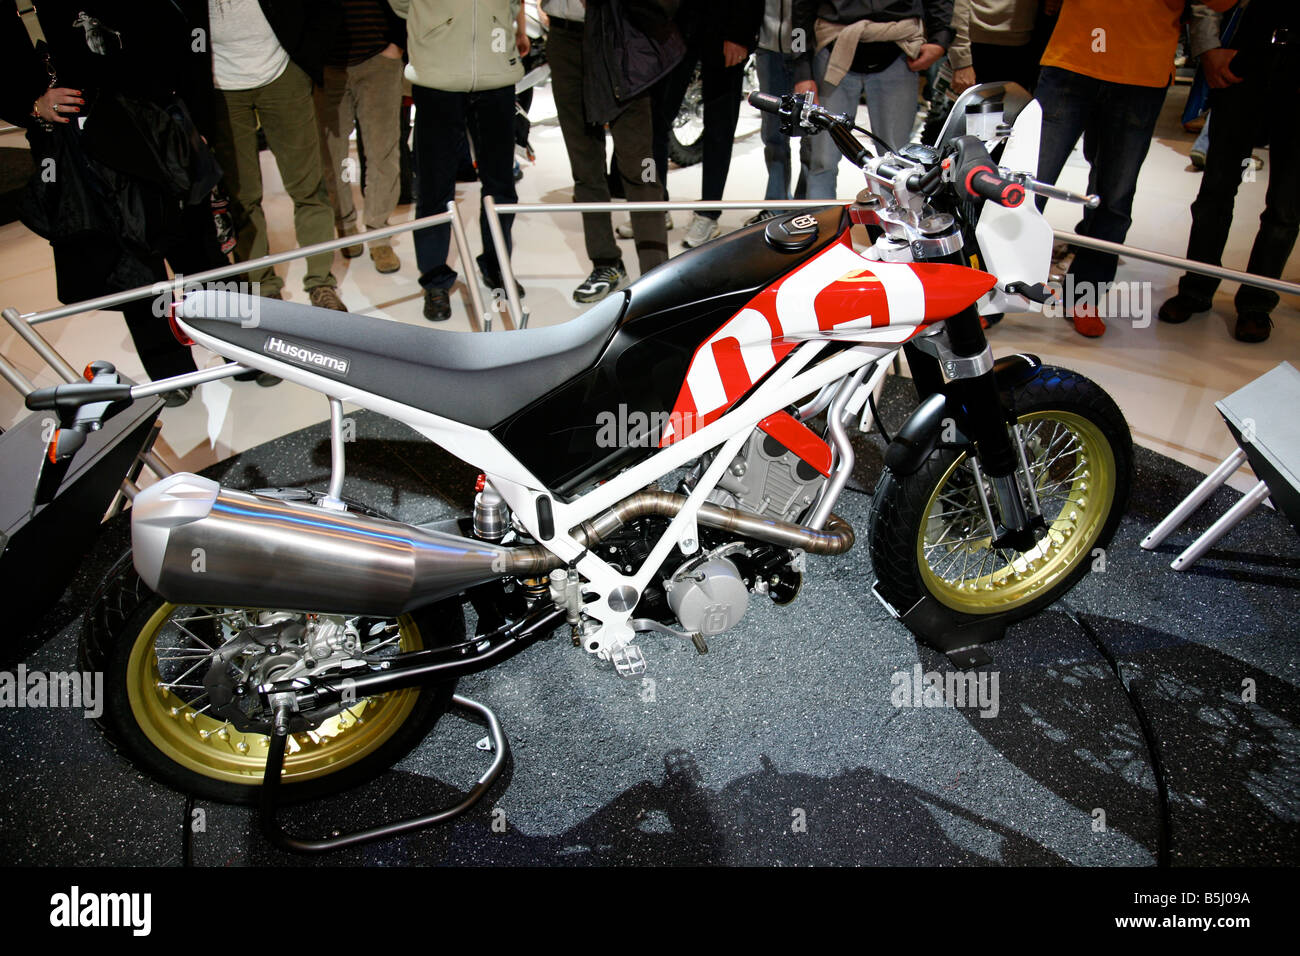 EICMA 2008 International cycle and motorcycle exhibition Milan Italy - Stock Image